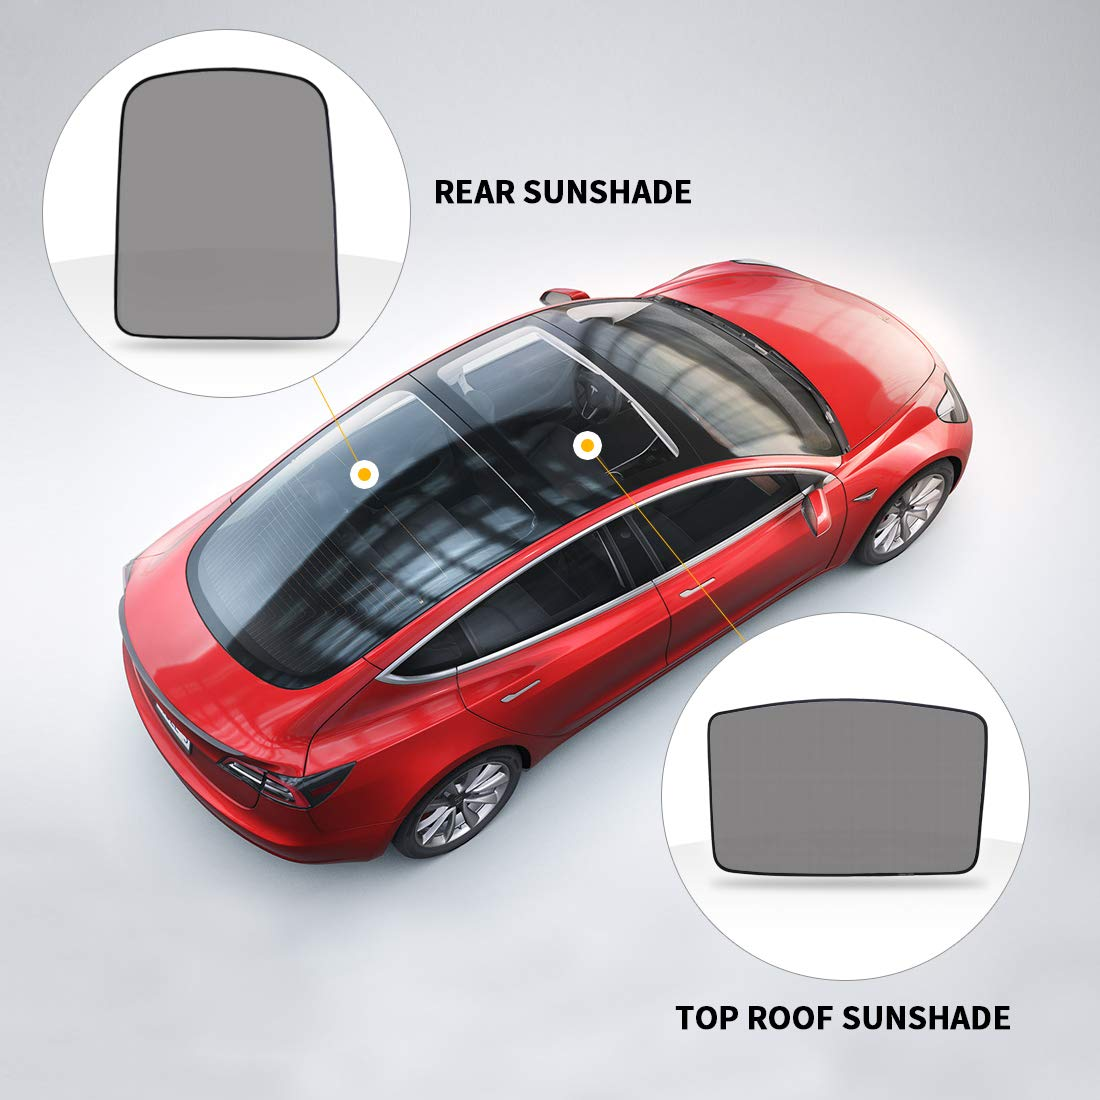 Roof /& Rear BougeRV for Tesla Model 3 Glass Roof Rear Sunshade Sun Visor Protector Sun Shade Compatible for Model 3